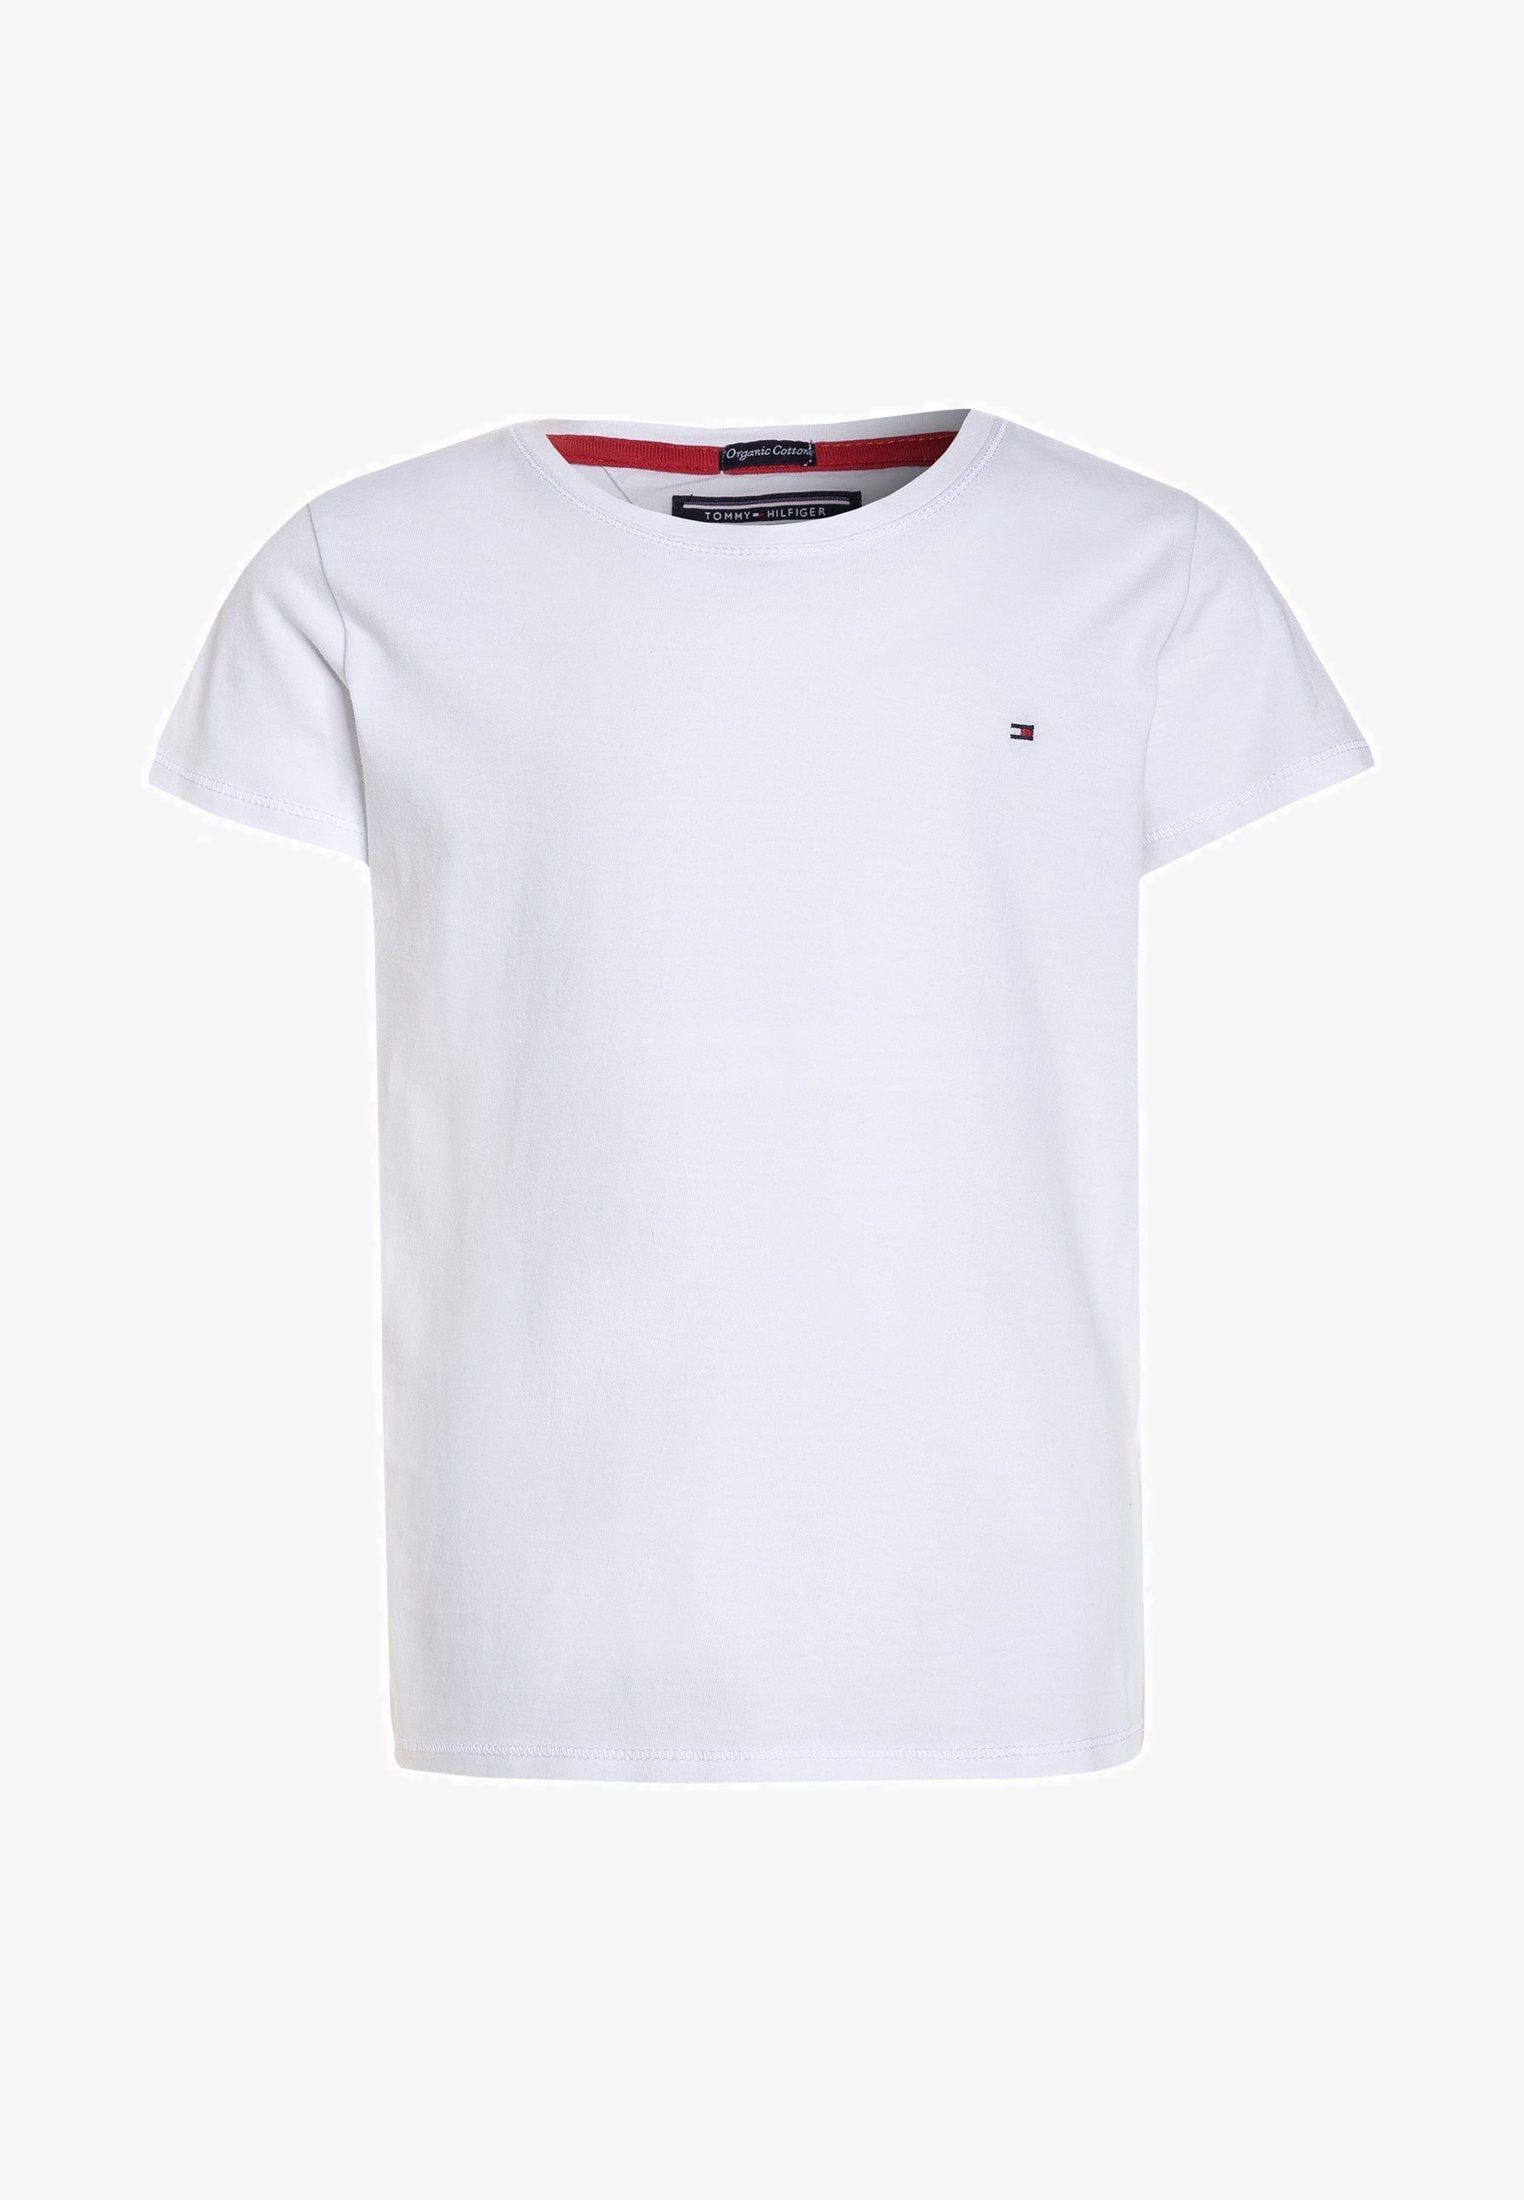 3409dcef T-shirt basic - classic white | Classic white and Tommy hilfiger